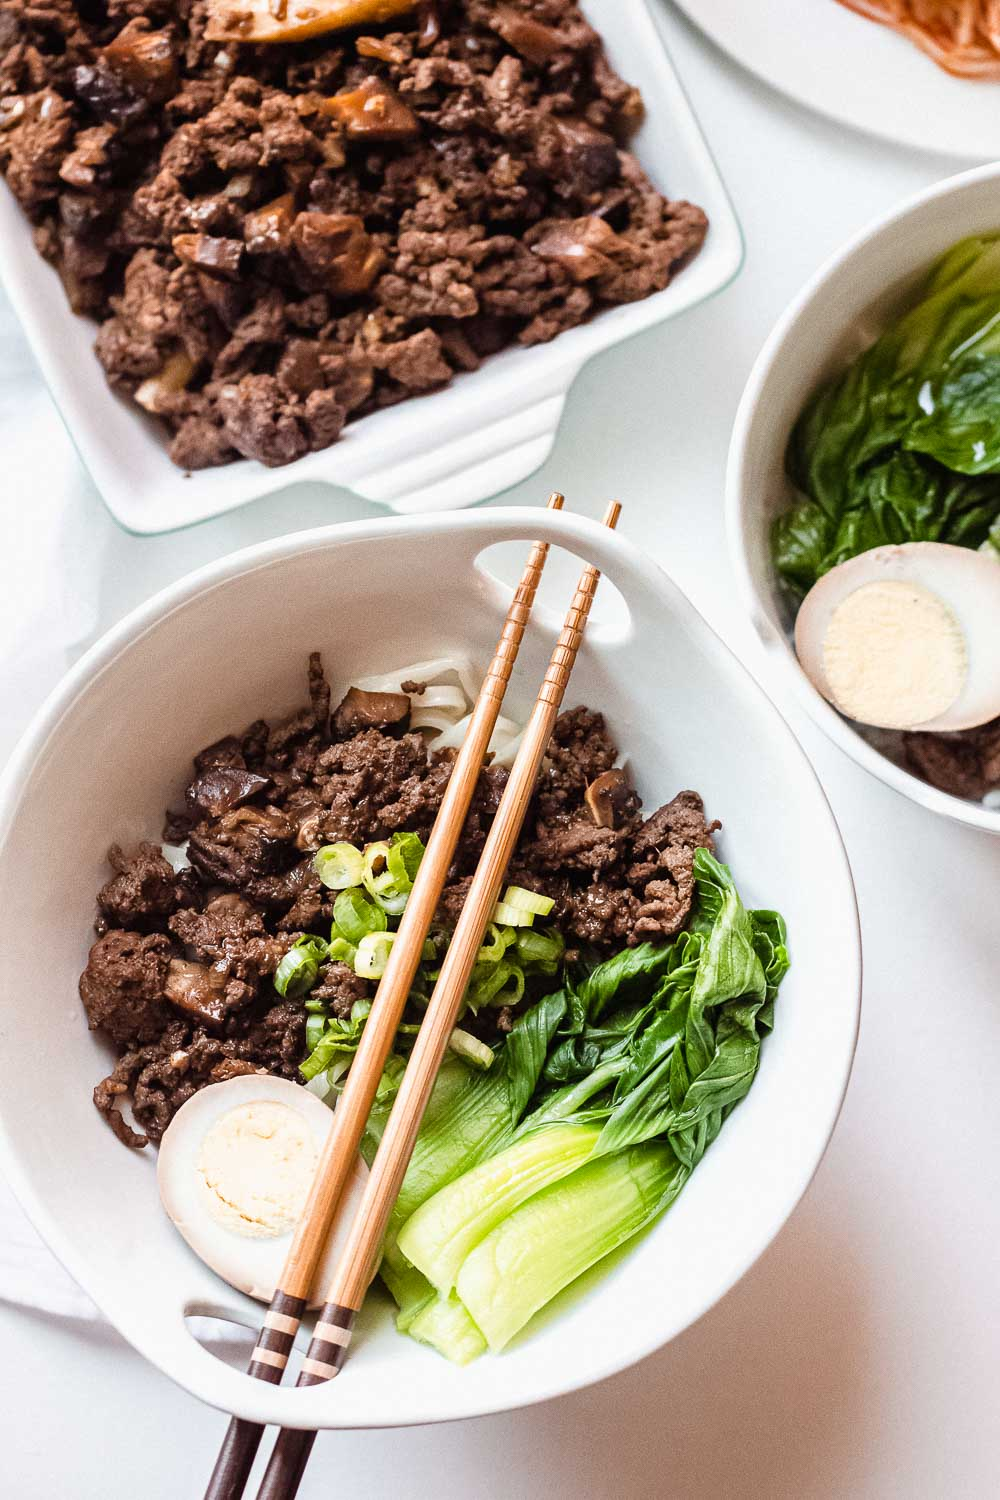 Taiwanese meat sauce recipe (lu rou fan). This savory classic comes in aromatic Chinese five-spices and soy sauce in a simple braise for ground or minced meat. The best part you can make this on a stove or in an instant pot.